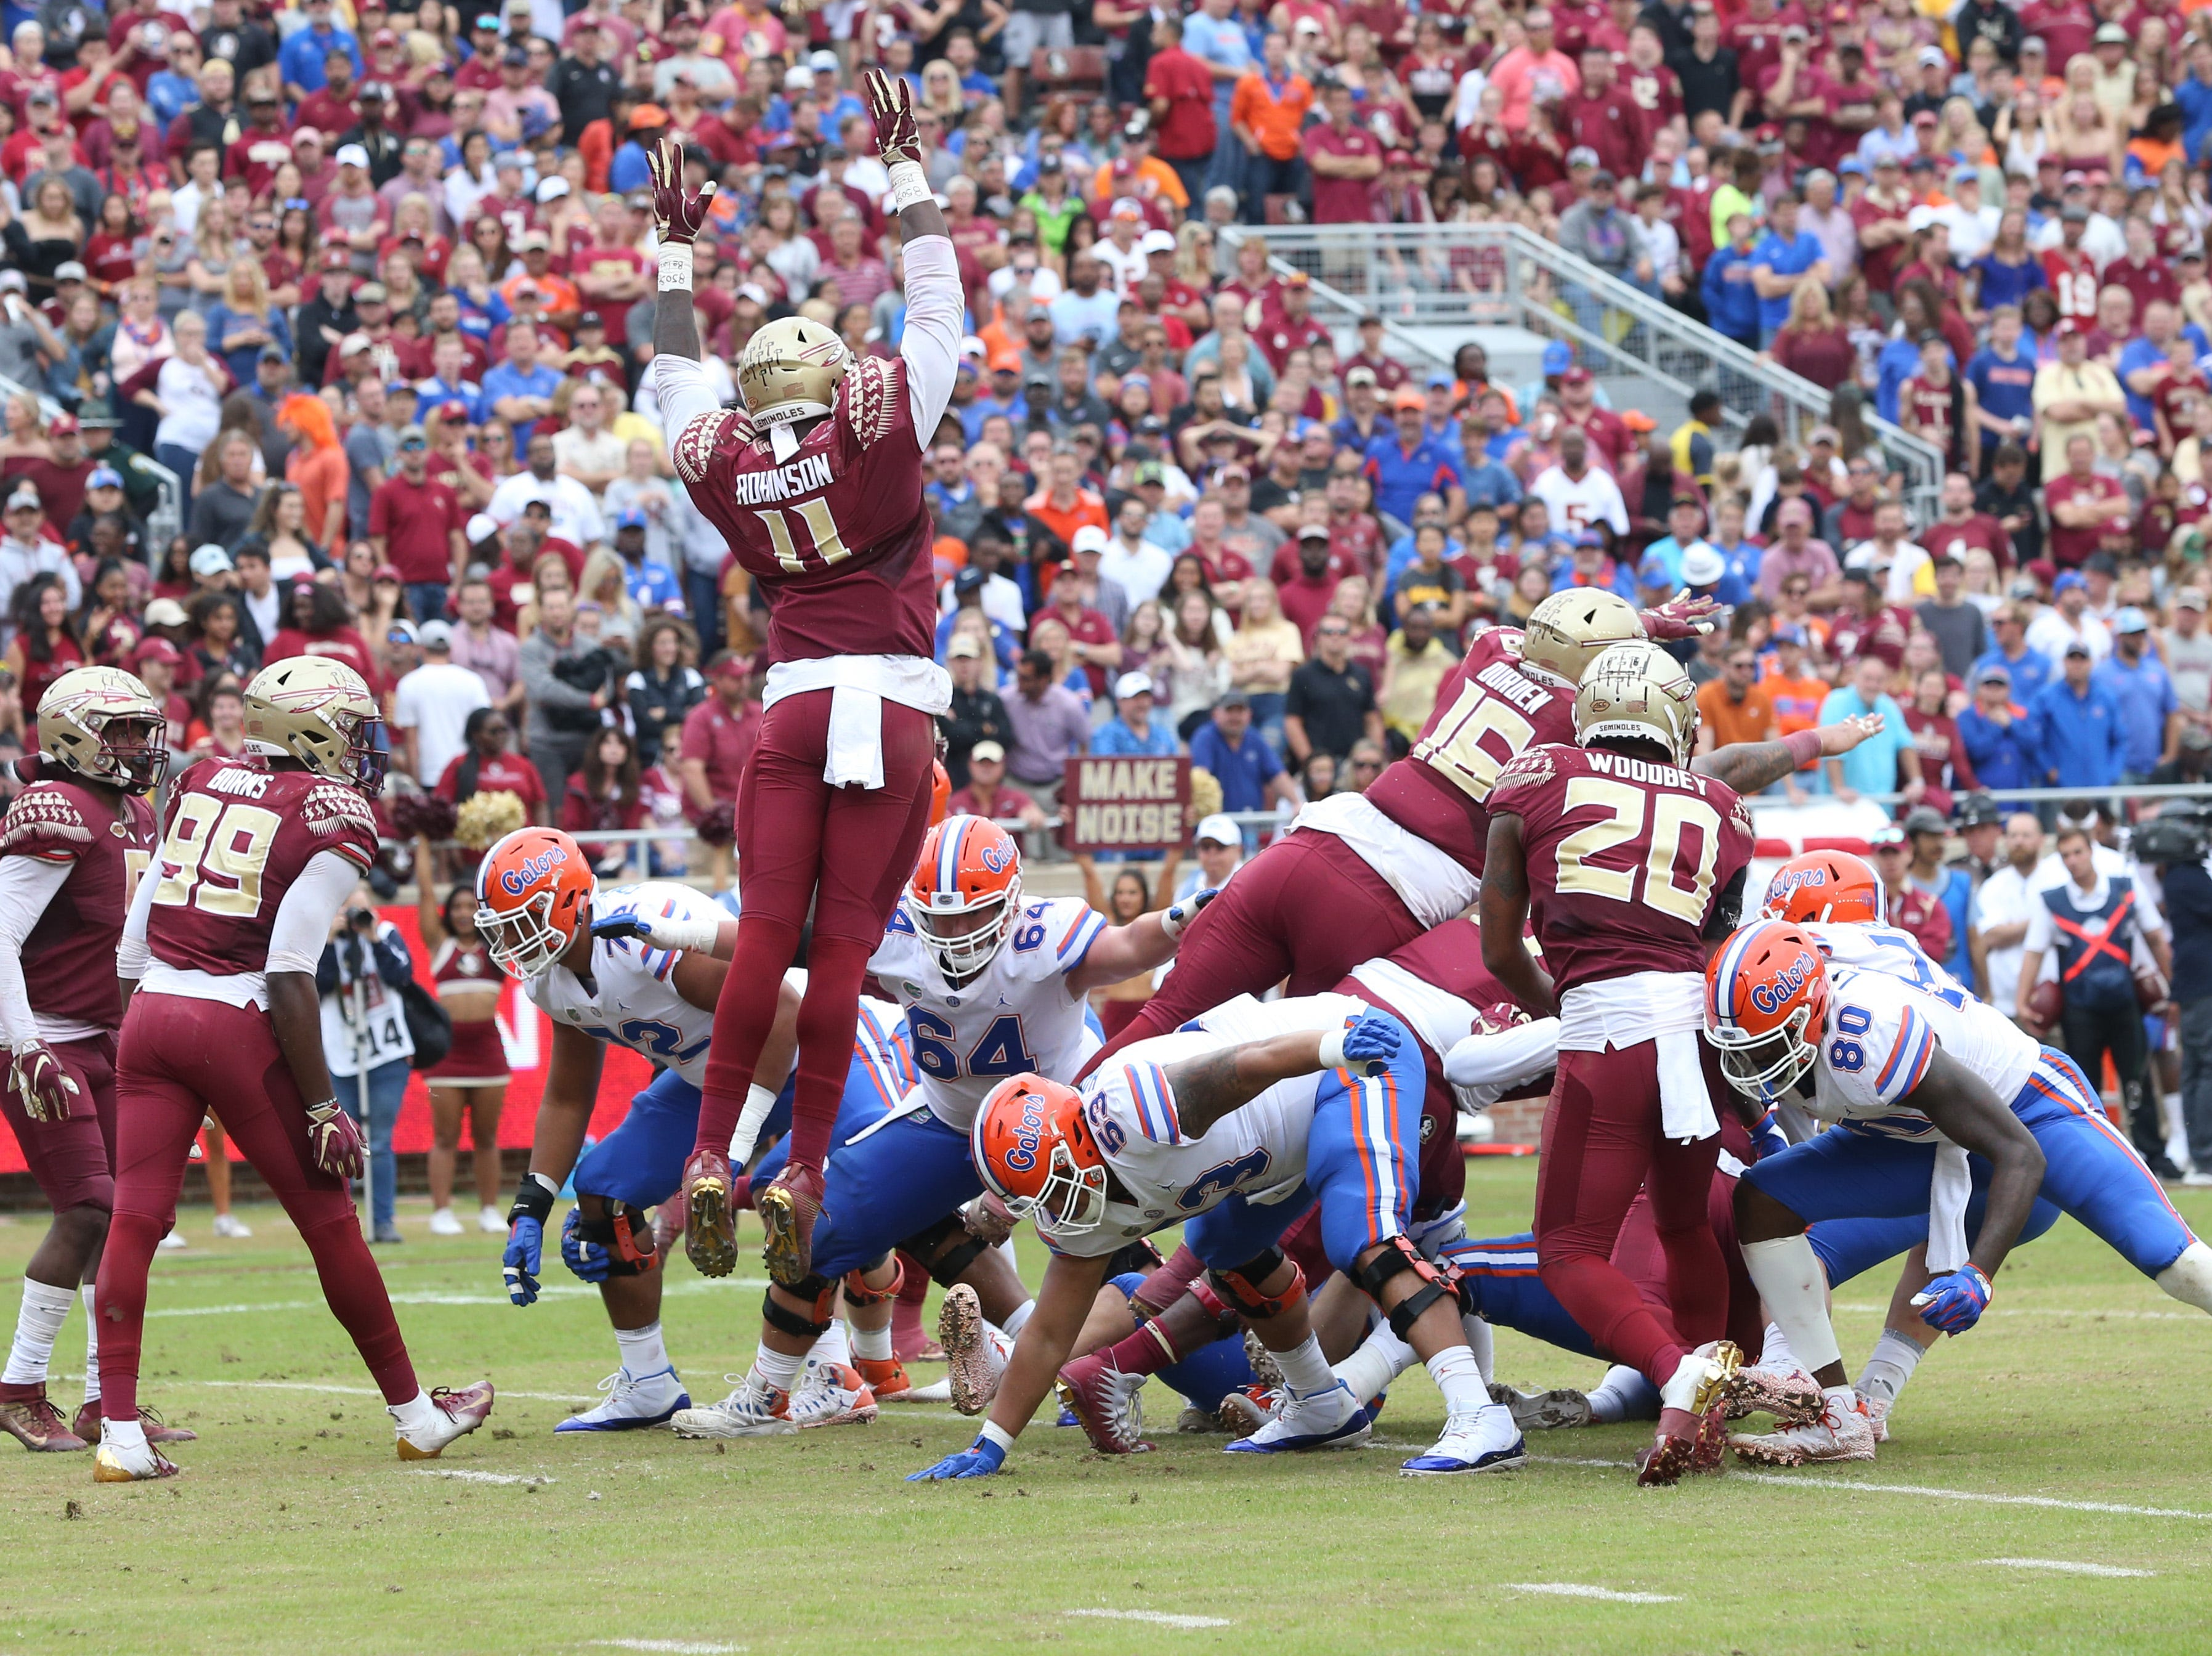 Florida State Seminoles defensive end Janarius Robinson (11) jumps while trying to block the extra point as the Florida State Seminoles take on their rival the Florida Gators in college football at Doak S. Campbell Stadium, Saturday, Nov. 24, 2018.